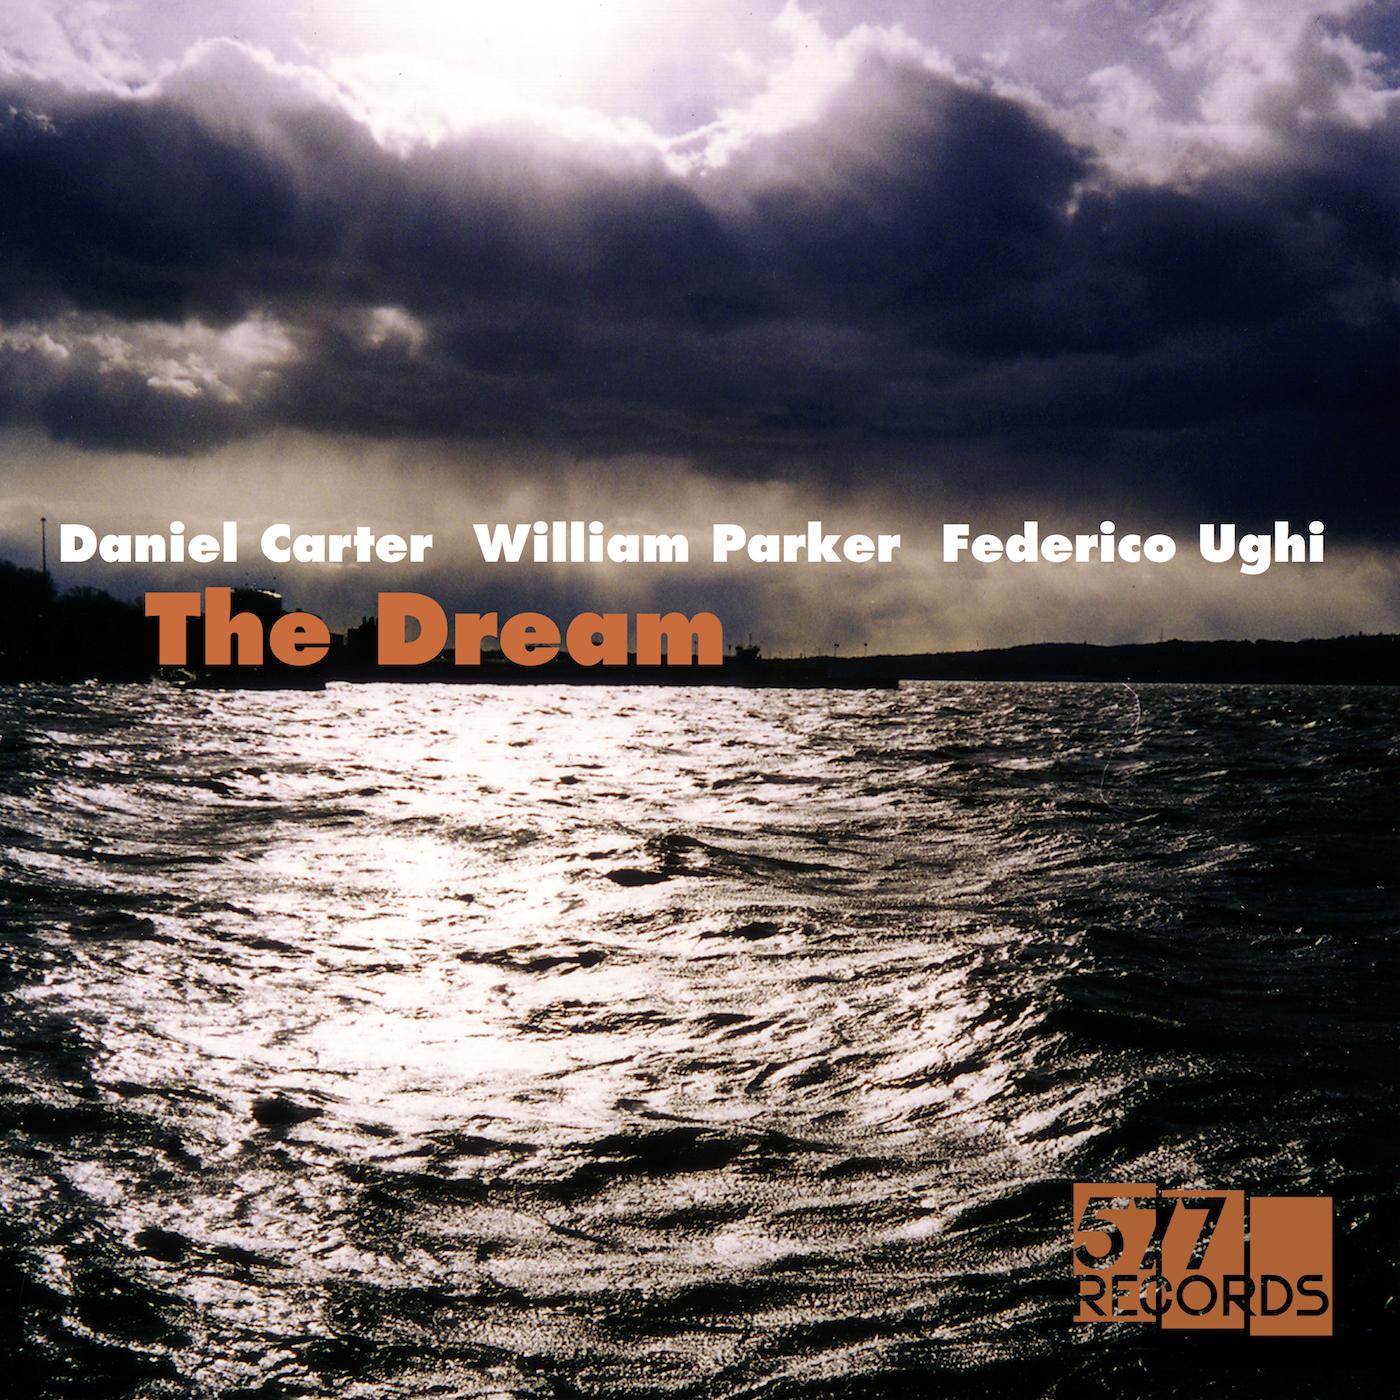 DANIEL CARTER, WILLIAM PARKER, FEDERICO UGHI THE DREAM - VINYL REISSUE